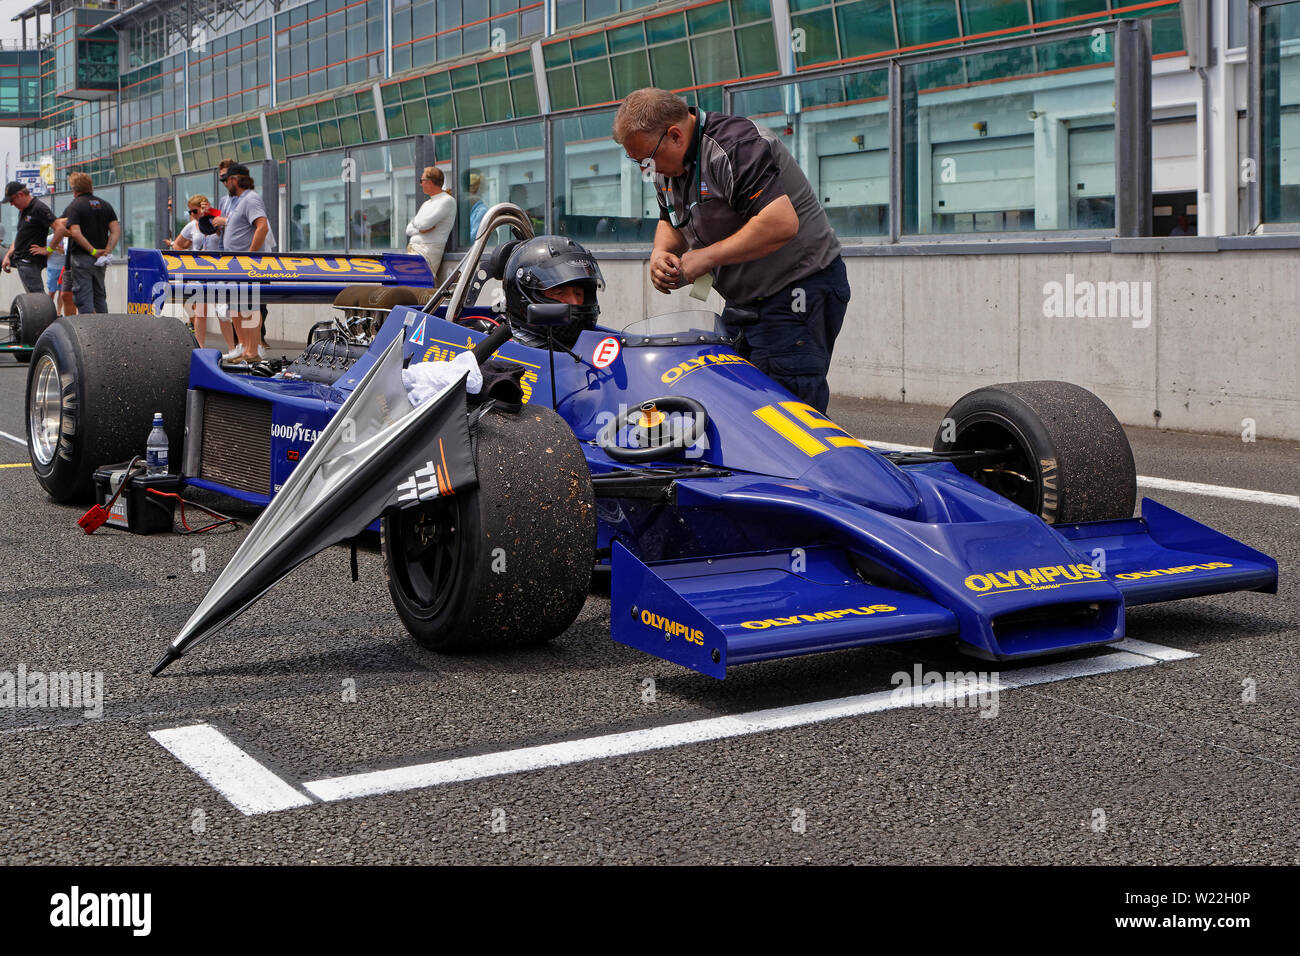 Preparation For Formula One Race Stock Photos & Preparation